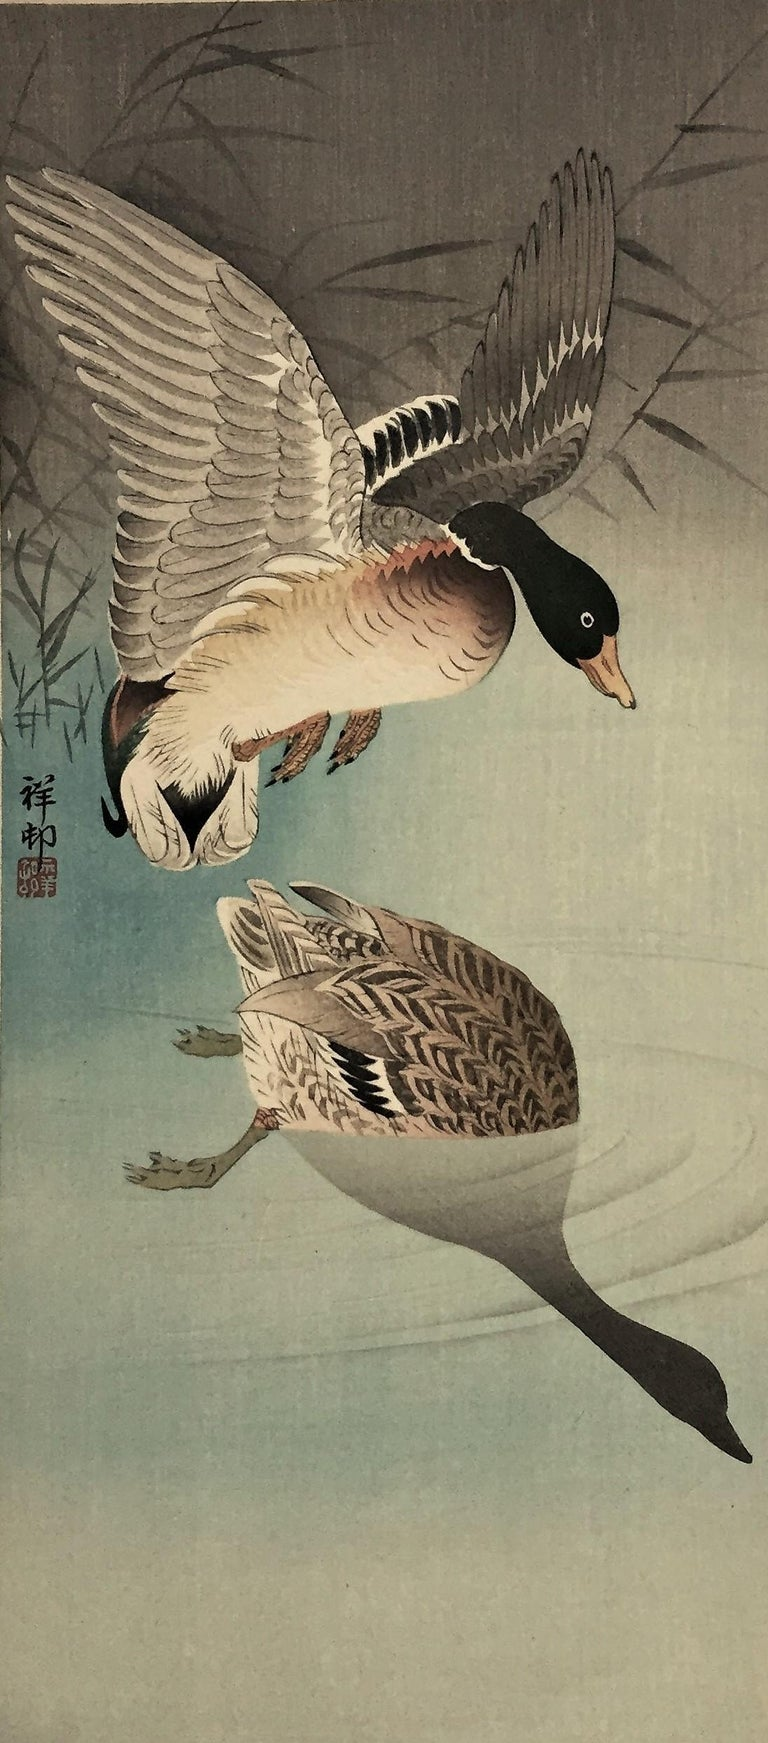 Two Wild Ducks in Flight Above Reeds, a Full Moon Behind. For Sale 1